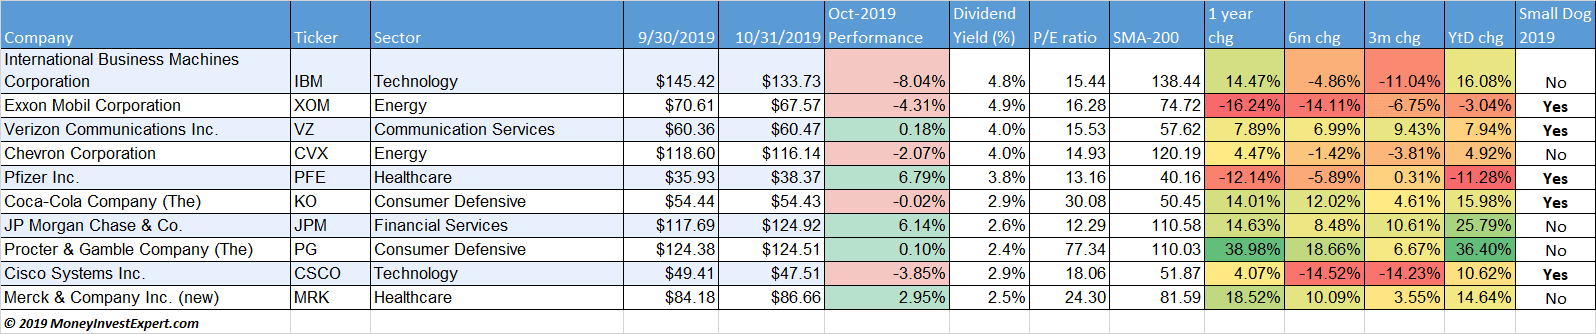 dogs of the dow performance october 2019